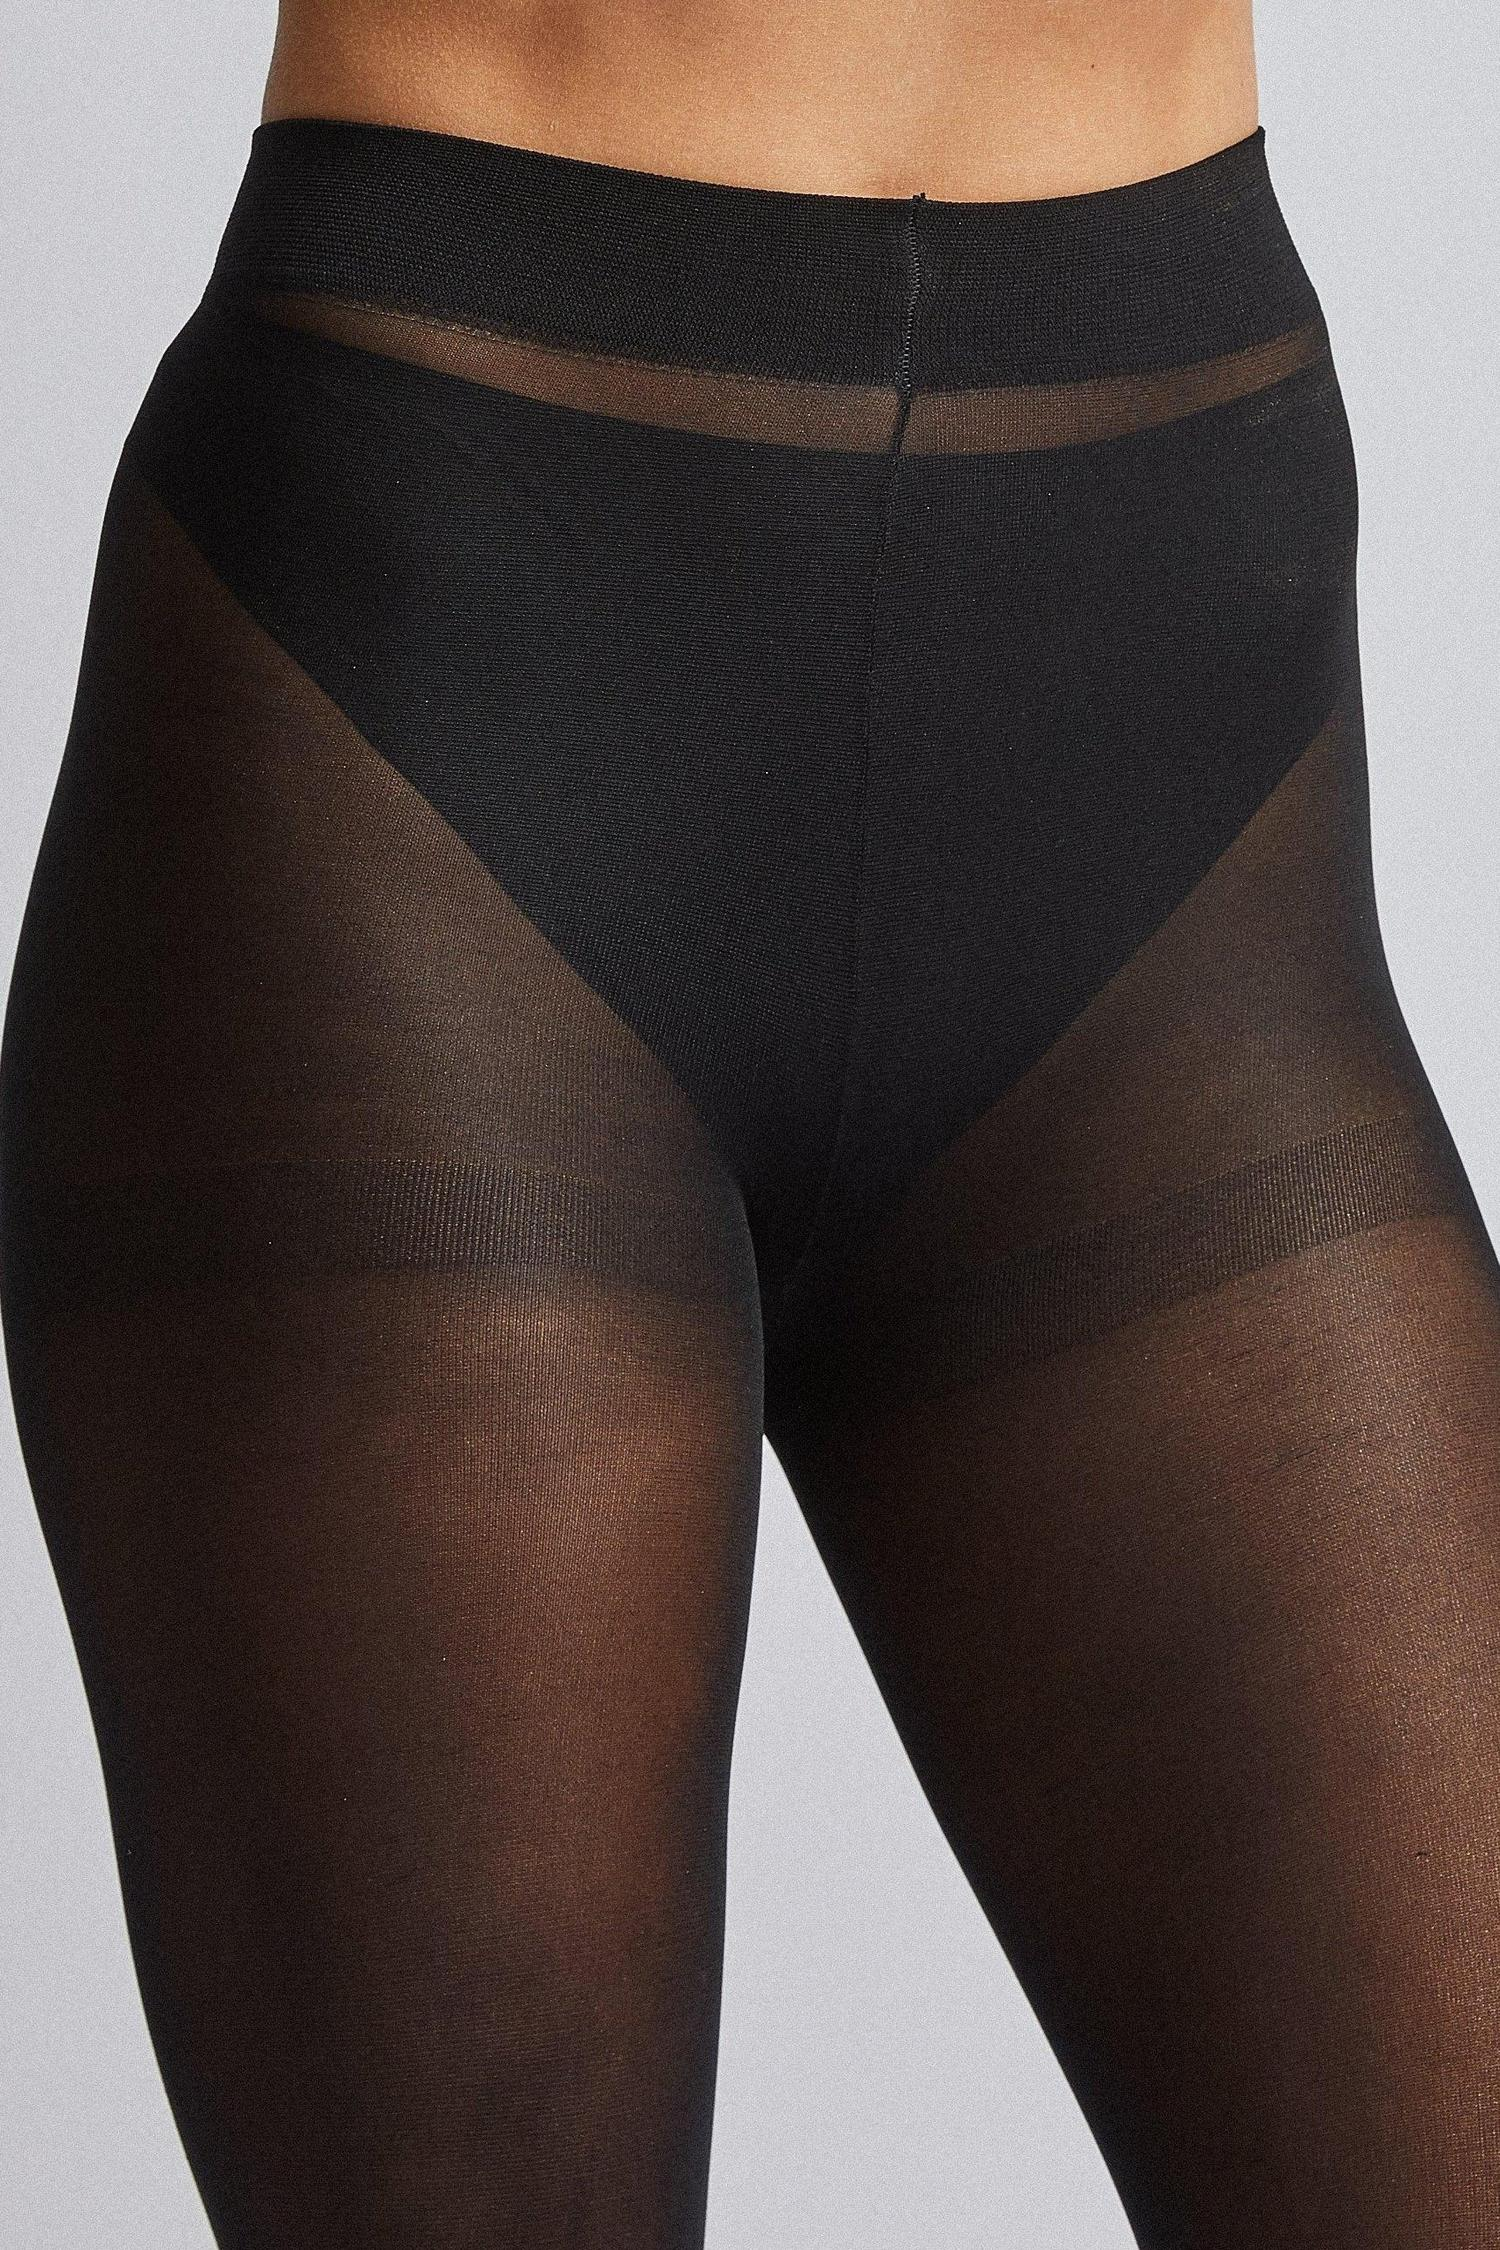 105 Black 40 Denier two Pack Tights image number 3